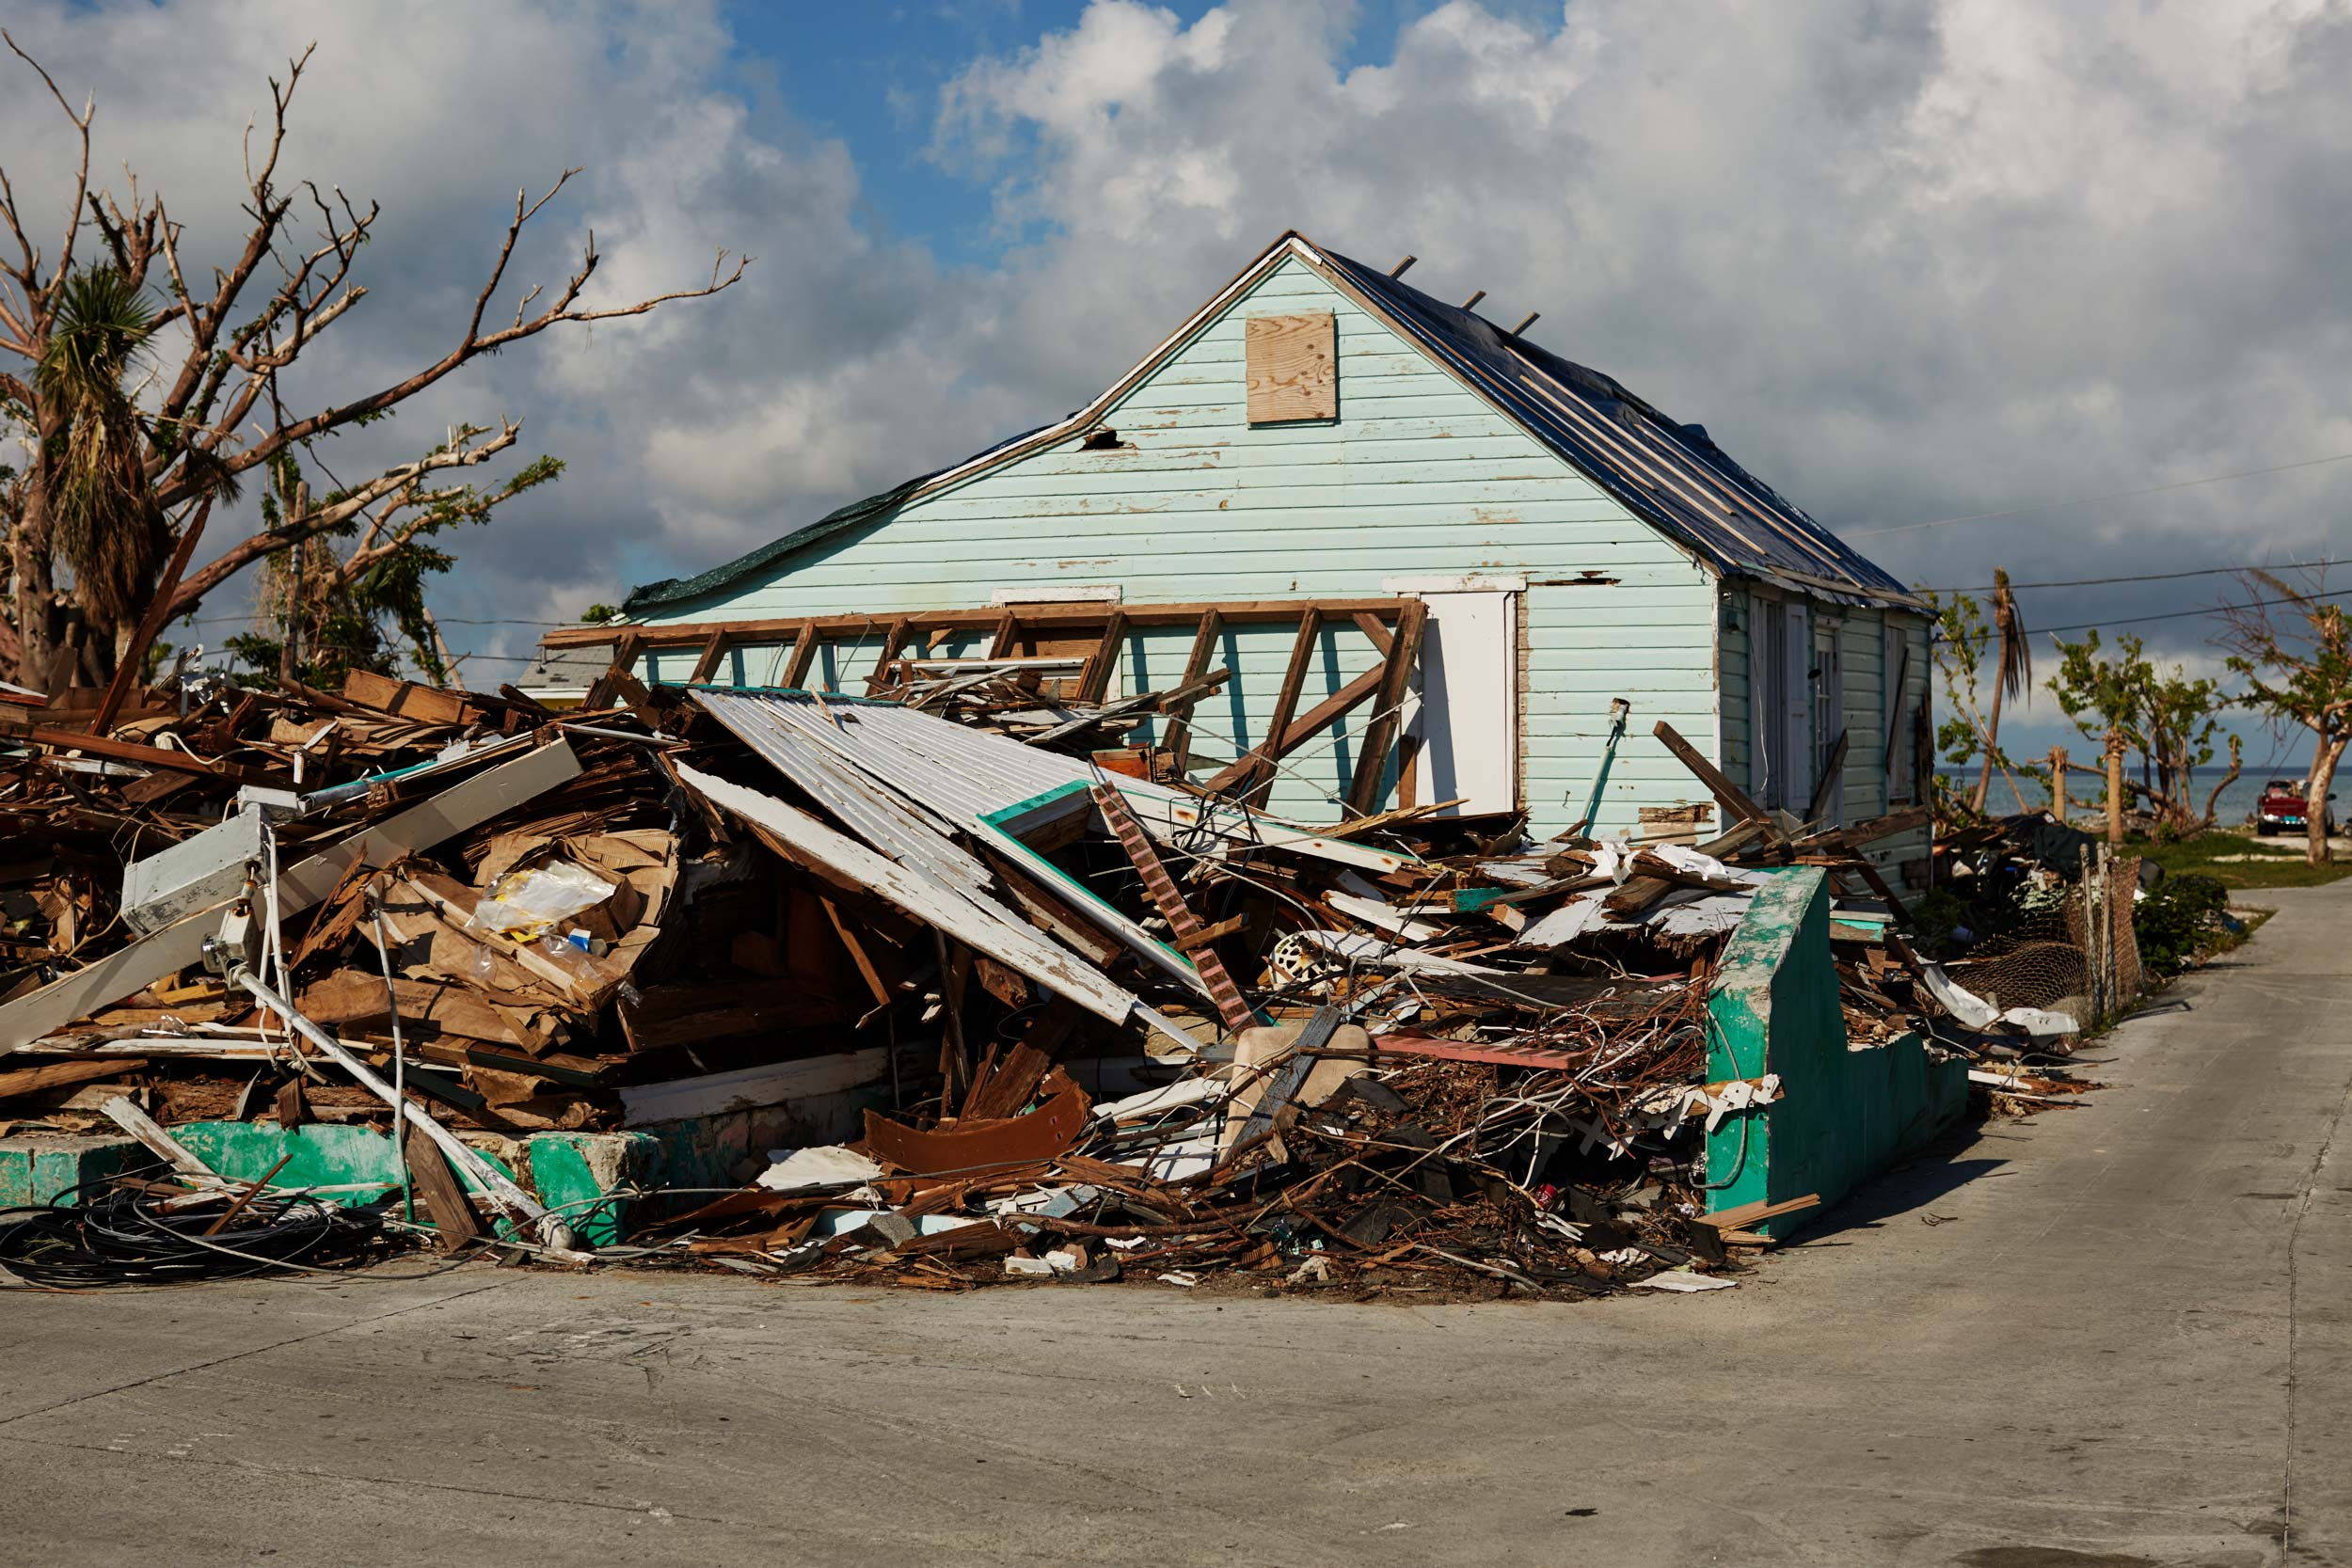 4-H911-BAHAMAS-HOUSE-DESTROYED-1